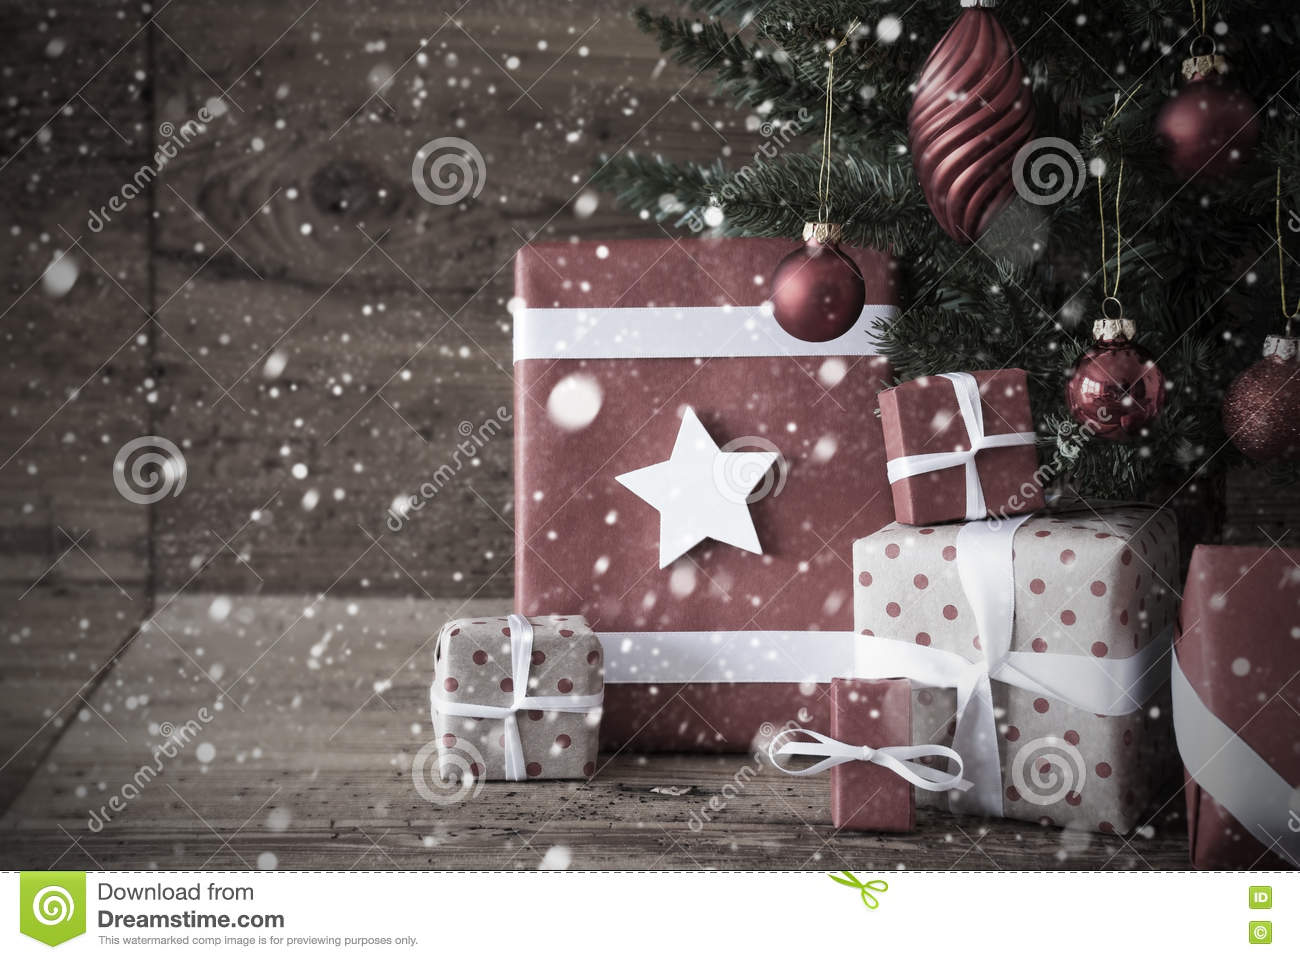 Nostalgic Christmas Tree With Presents And Balls, Snowflakes Stock ...